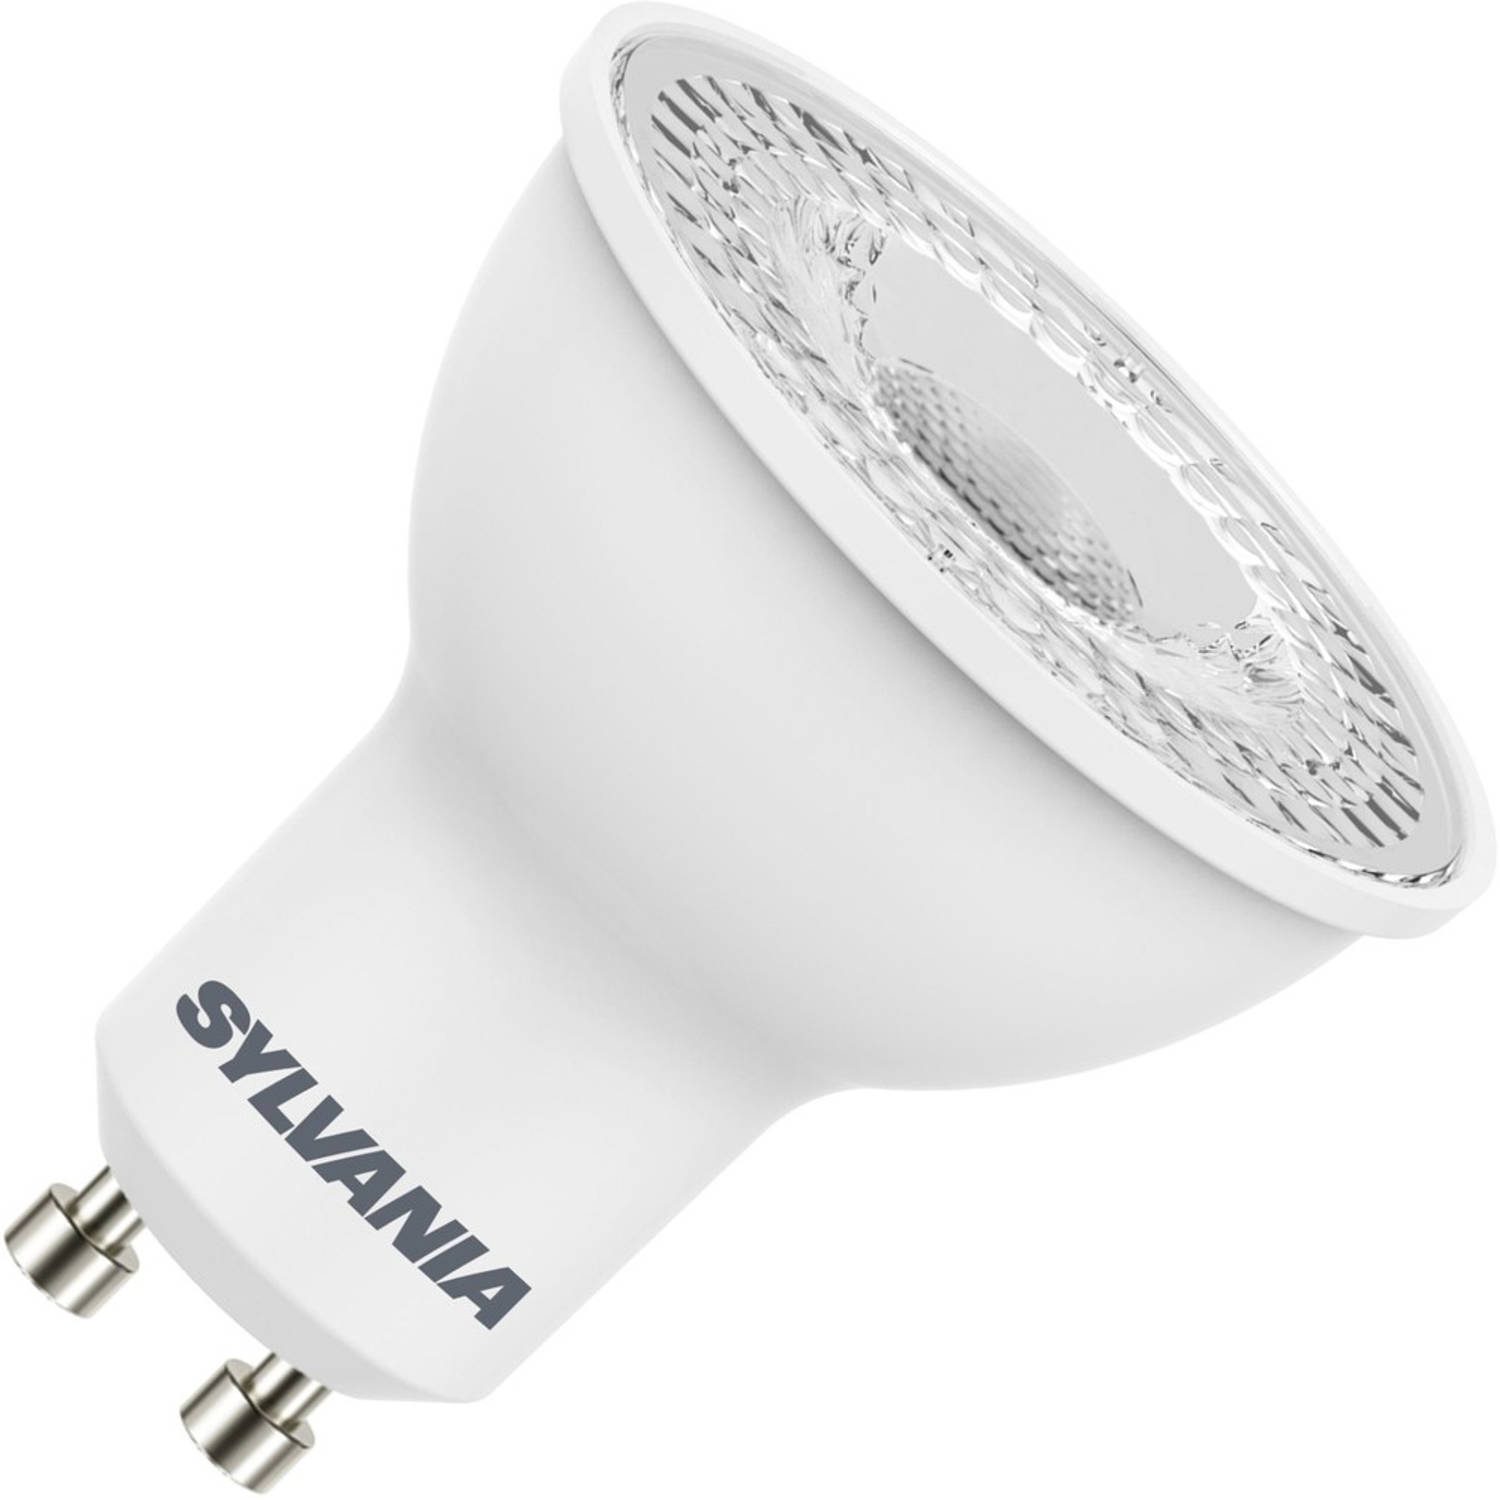 Sylvania led reflector 230v 5,5w (vervangt 50w) gu10 50mm 3000 warm-wit